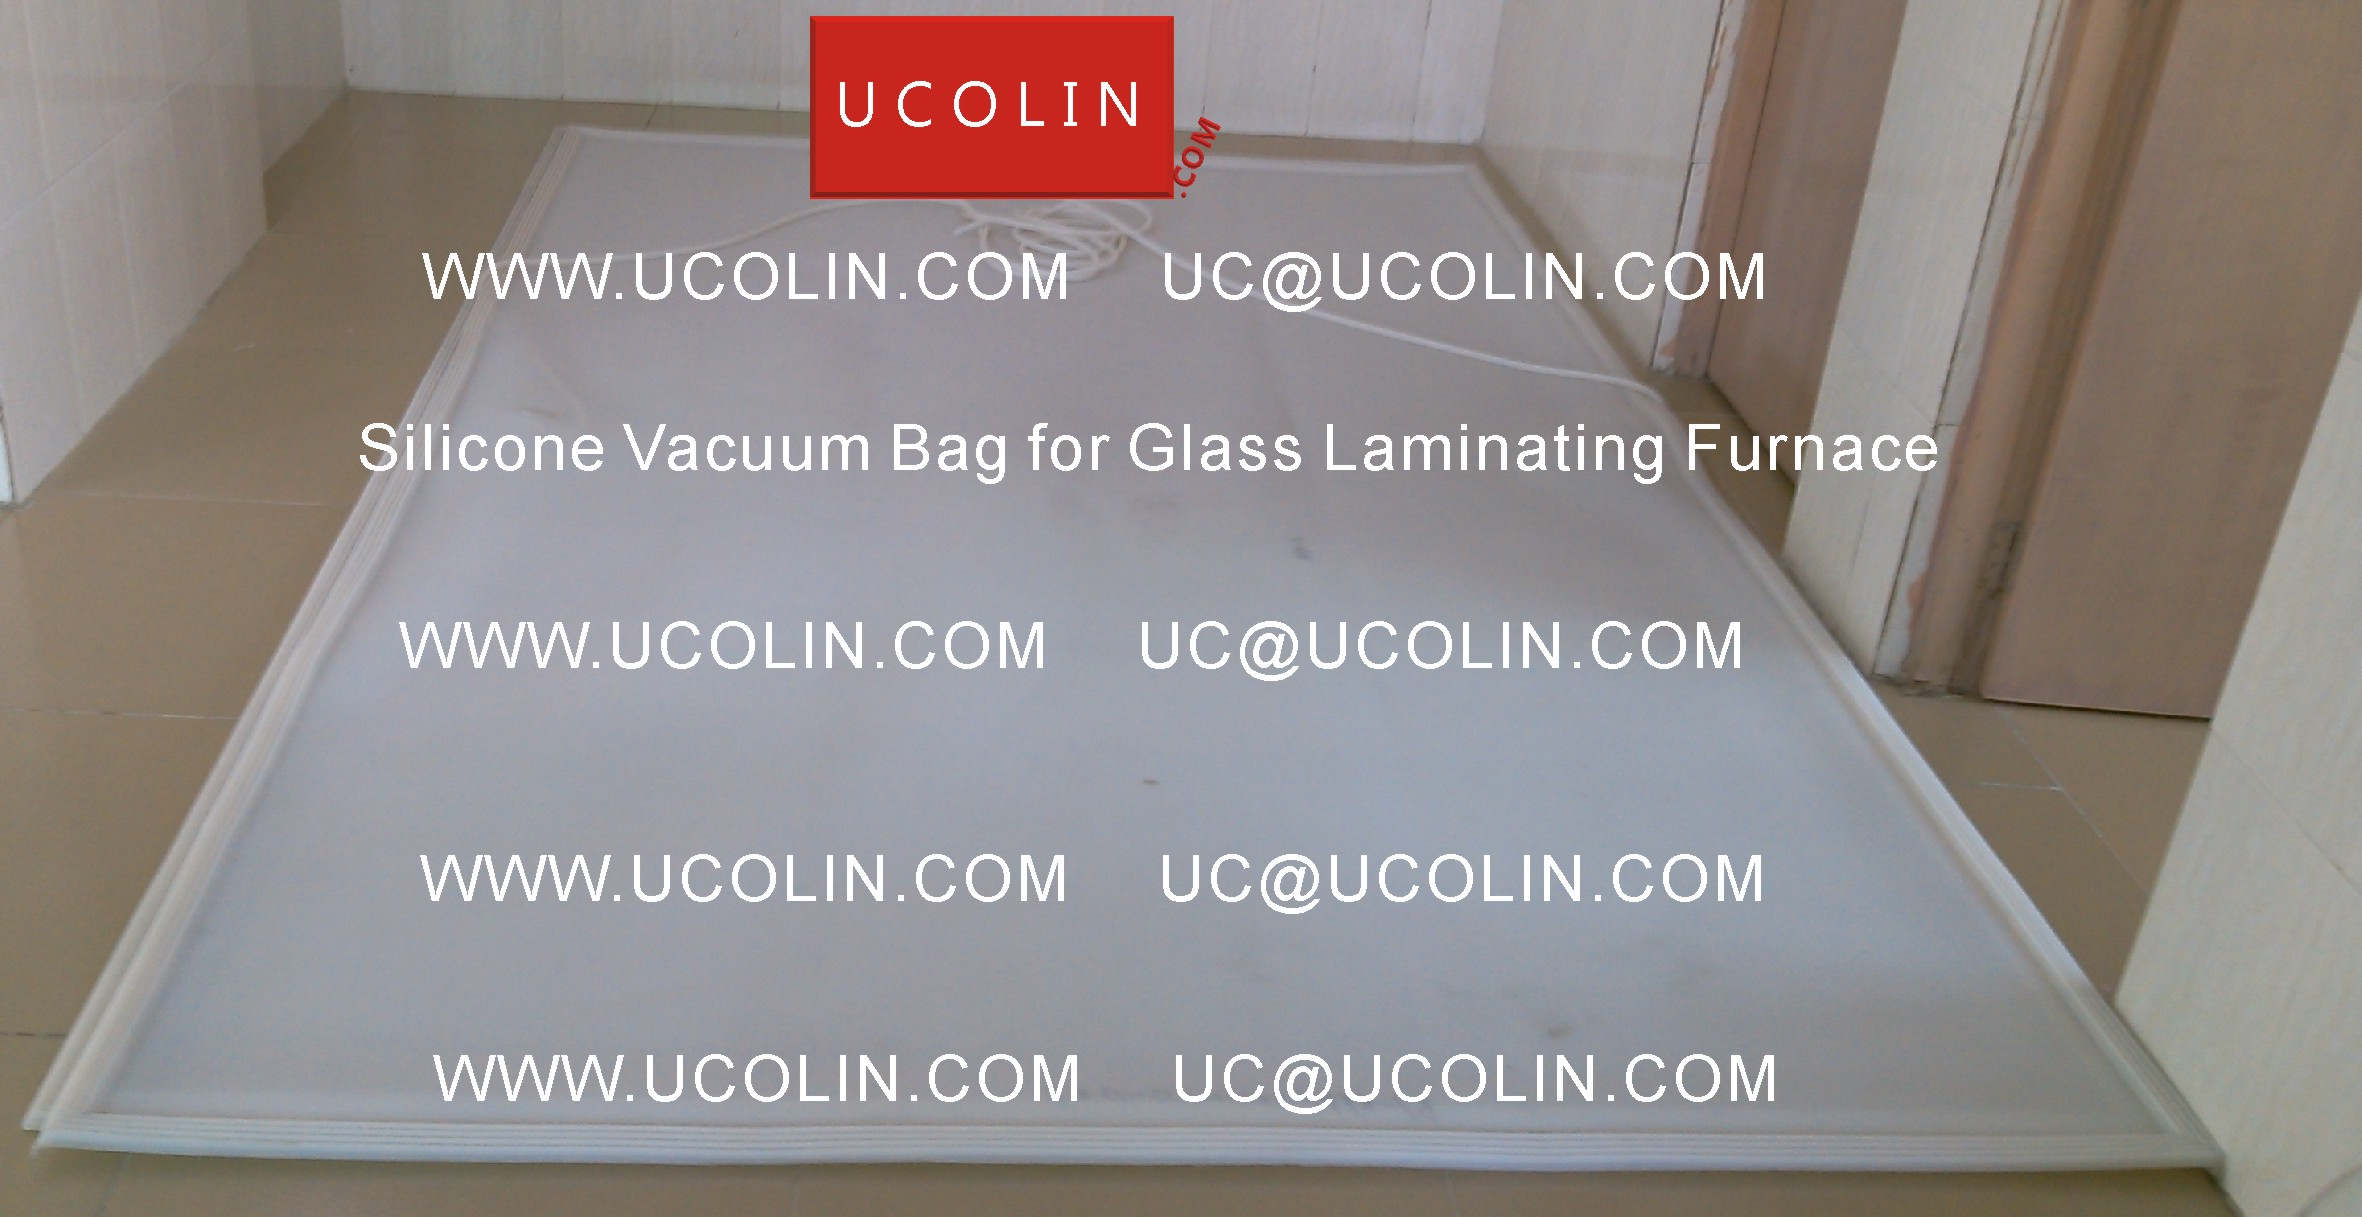 08 Silicone Vacuum Bag for Safety Glass Laminating Furnace